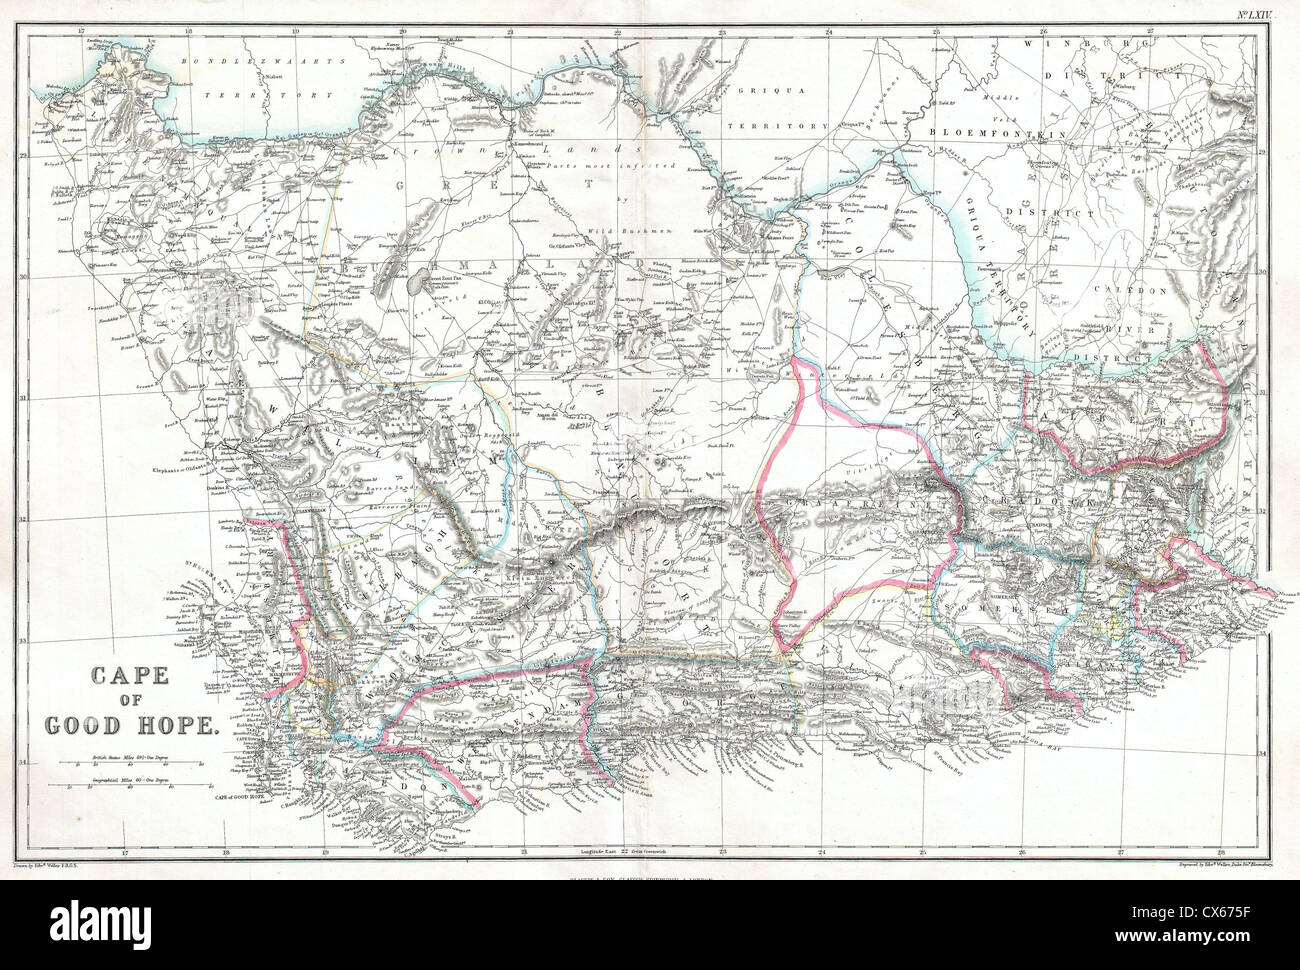 1860 Blackie Map of the Cape of Good Hope Stock Photo Royalty